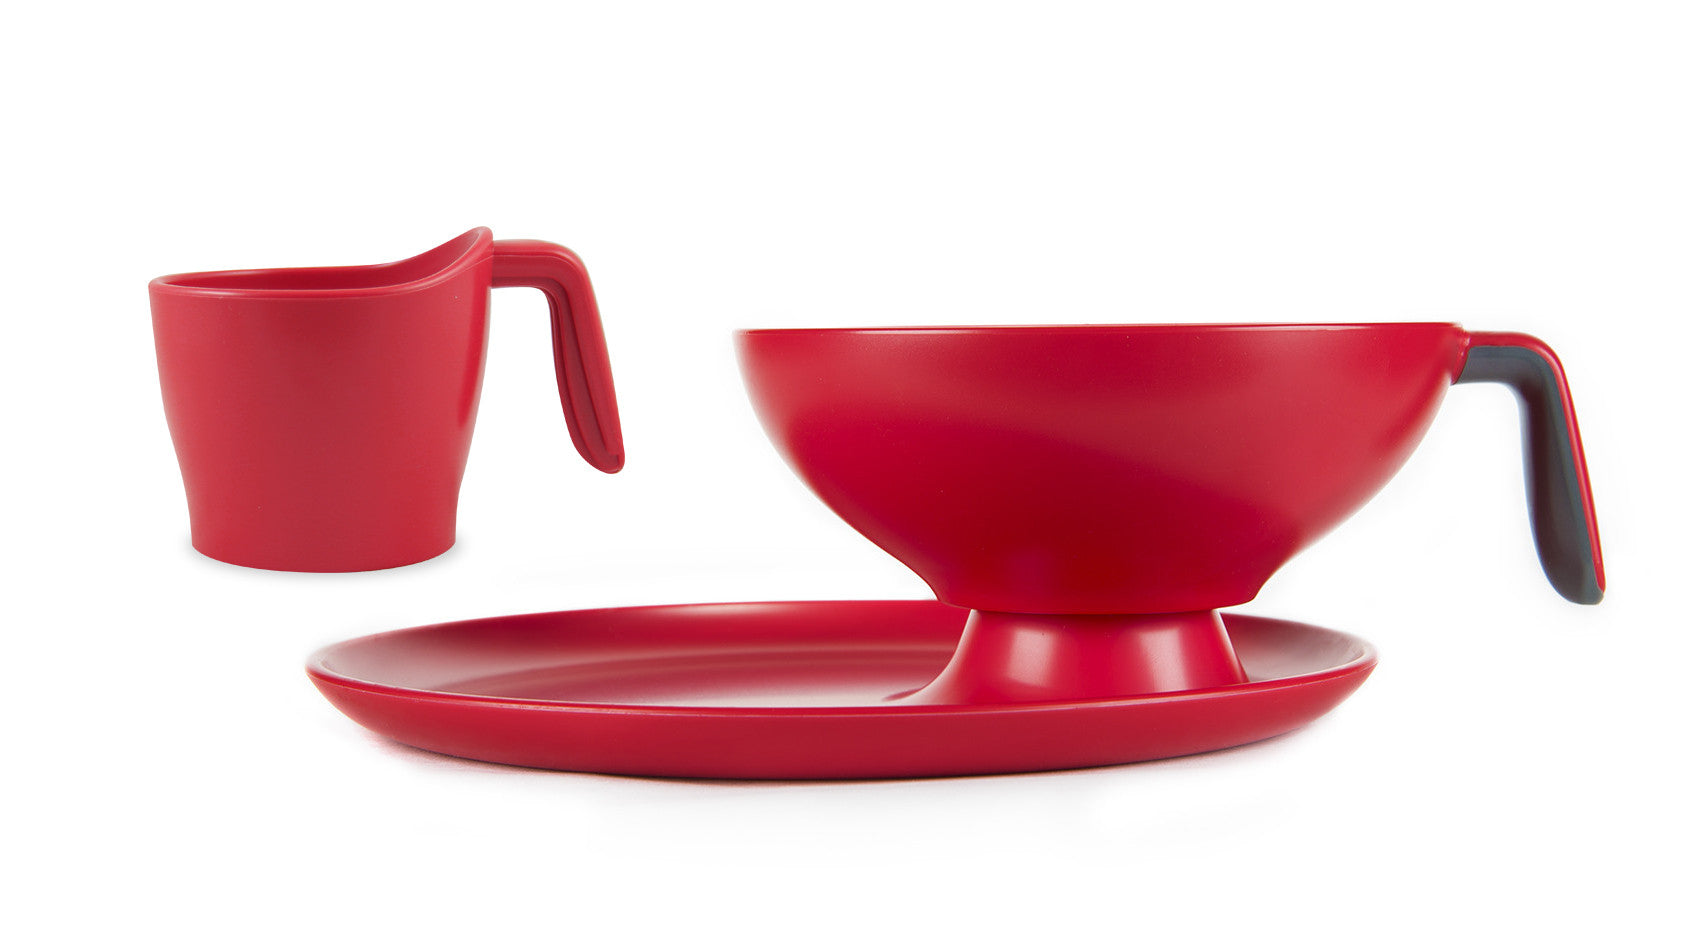 1 Ripple Set - Red with gray handle bowl, cup and plate